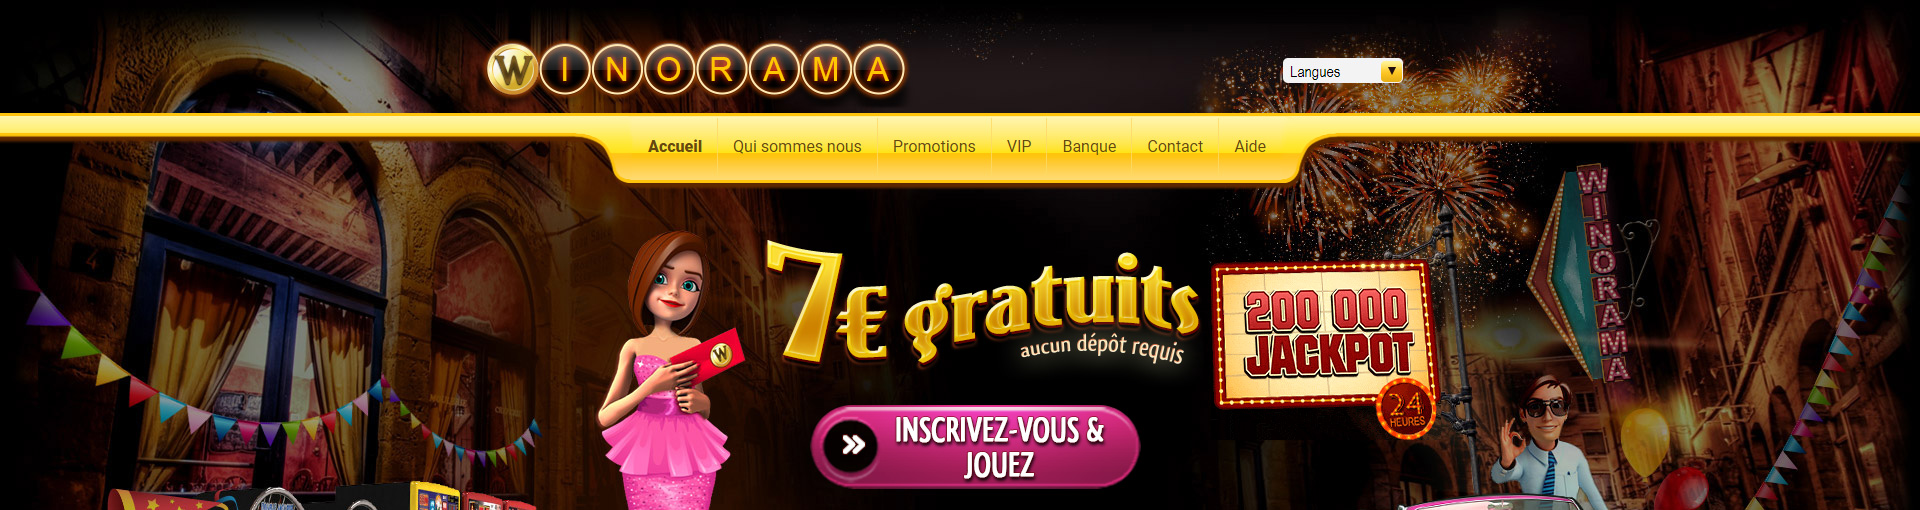 Winorama Casino Avis : banni par la rédaction